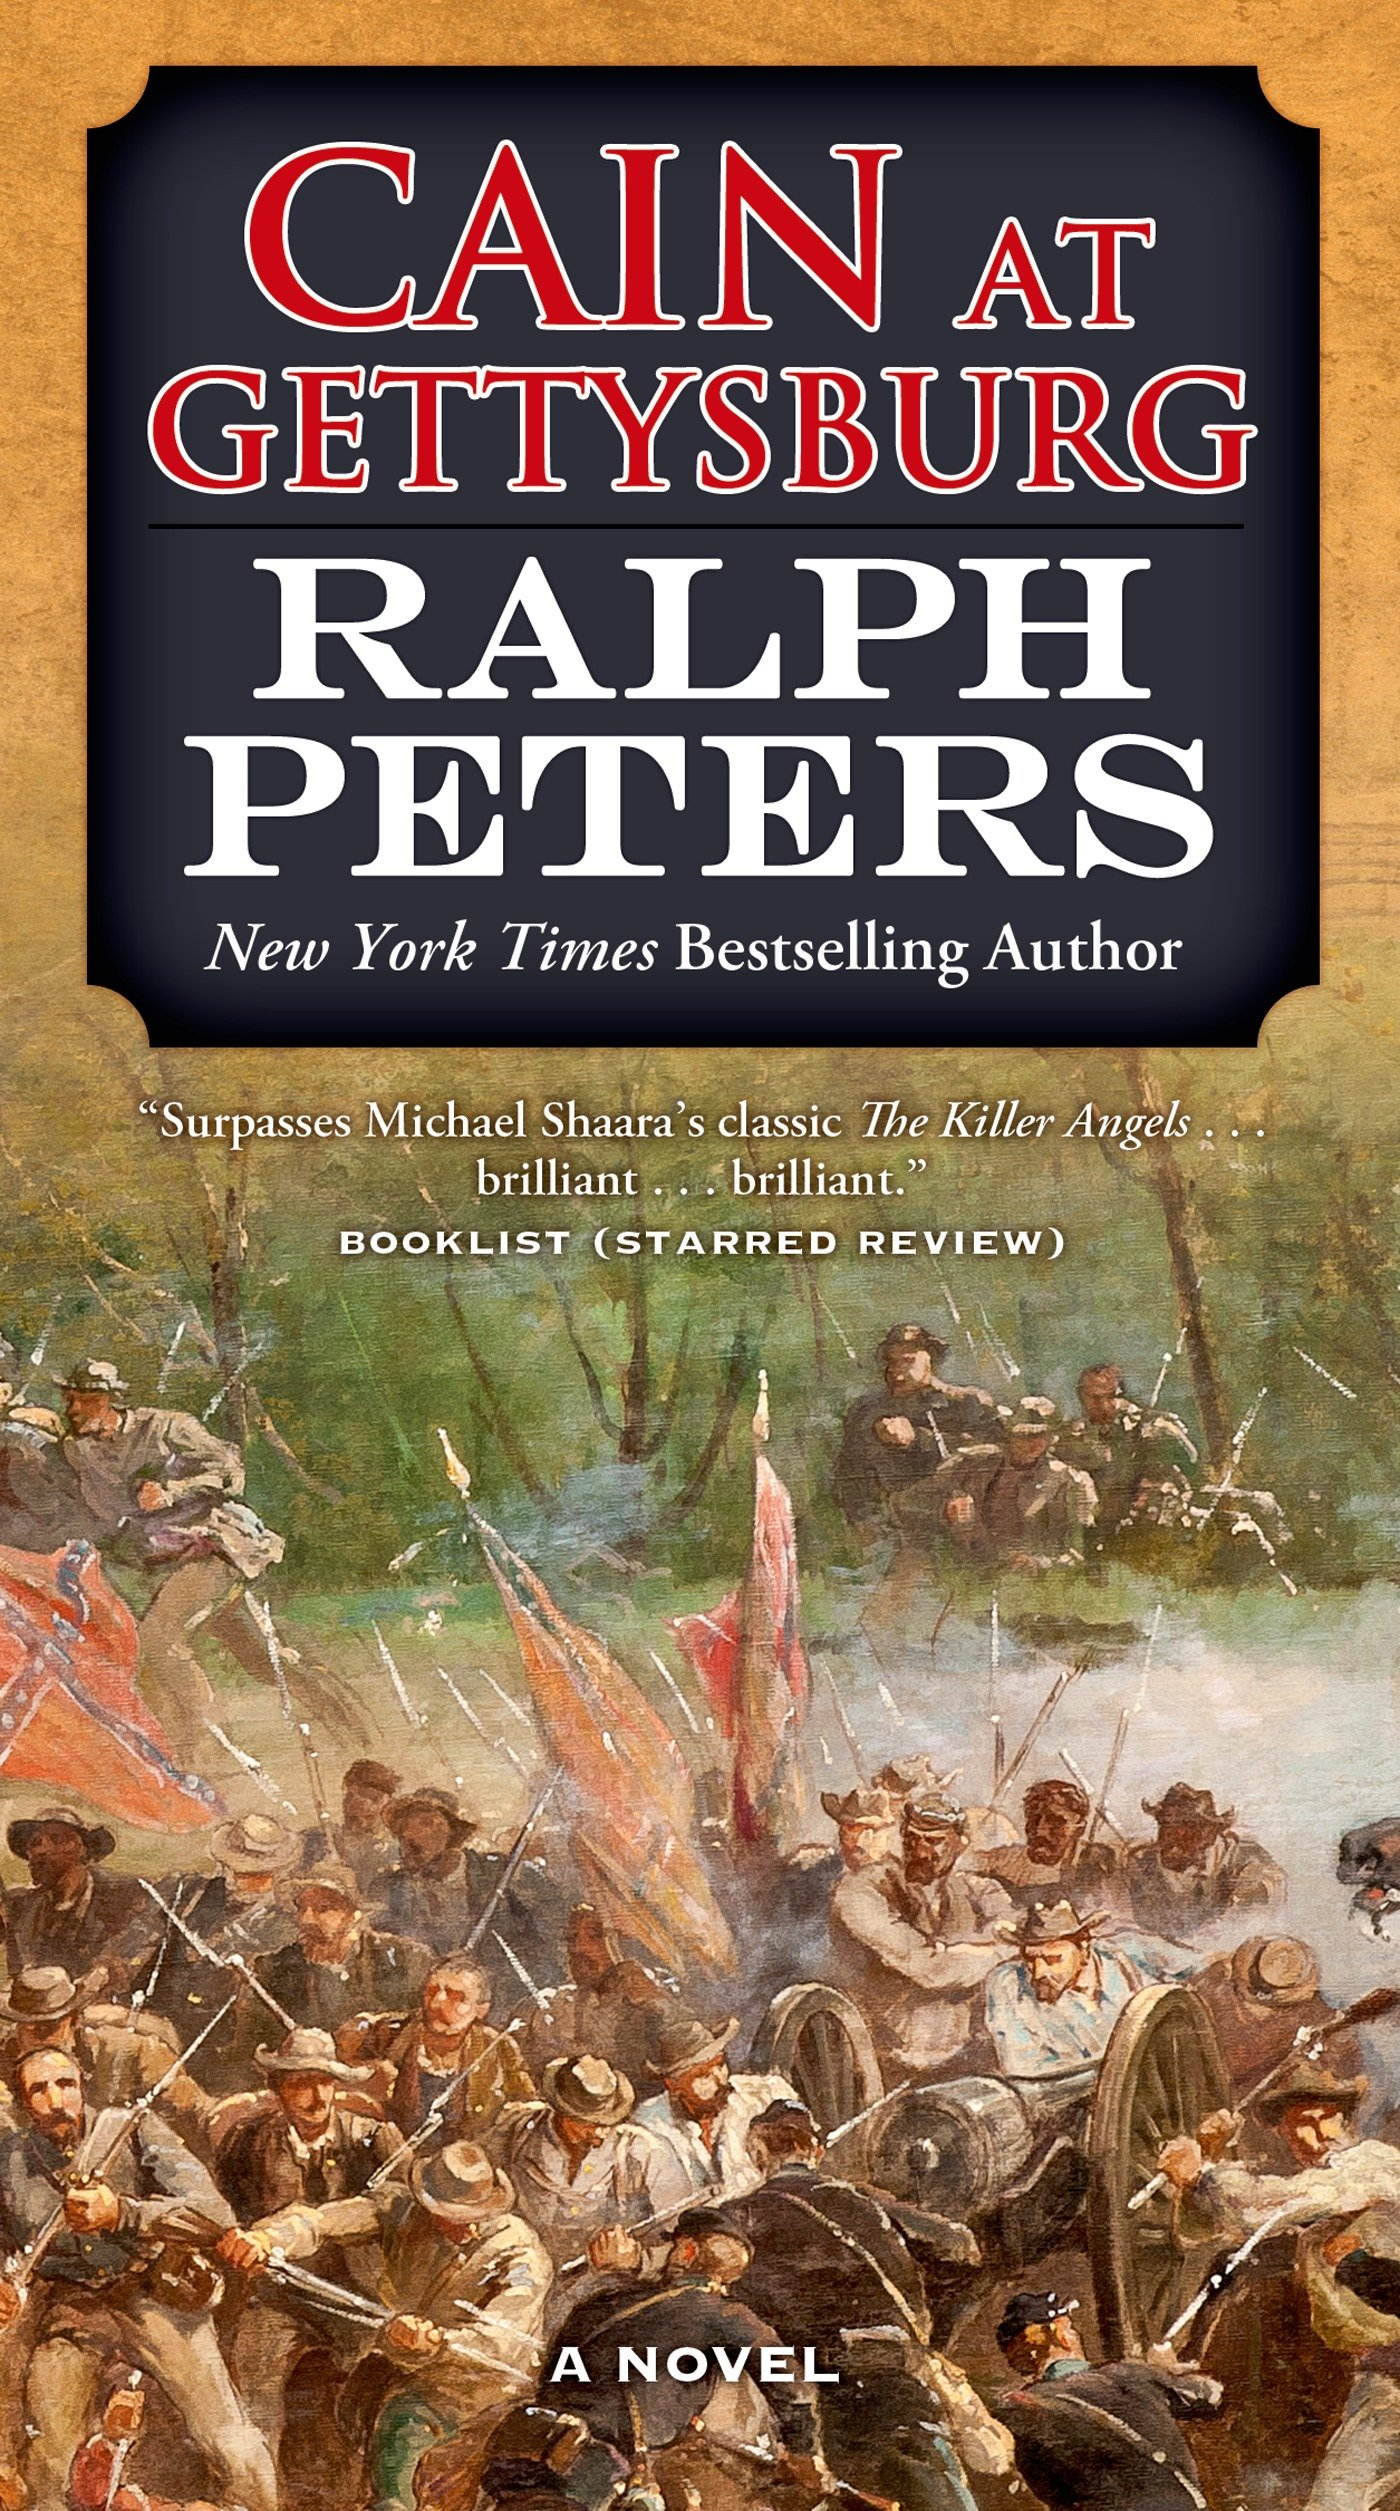 Amazon.com: Cain at Gettysburg: A Novel (The Battle Hymn Cycle)  (9780765368225): Ralph Peters: Books